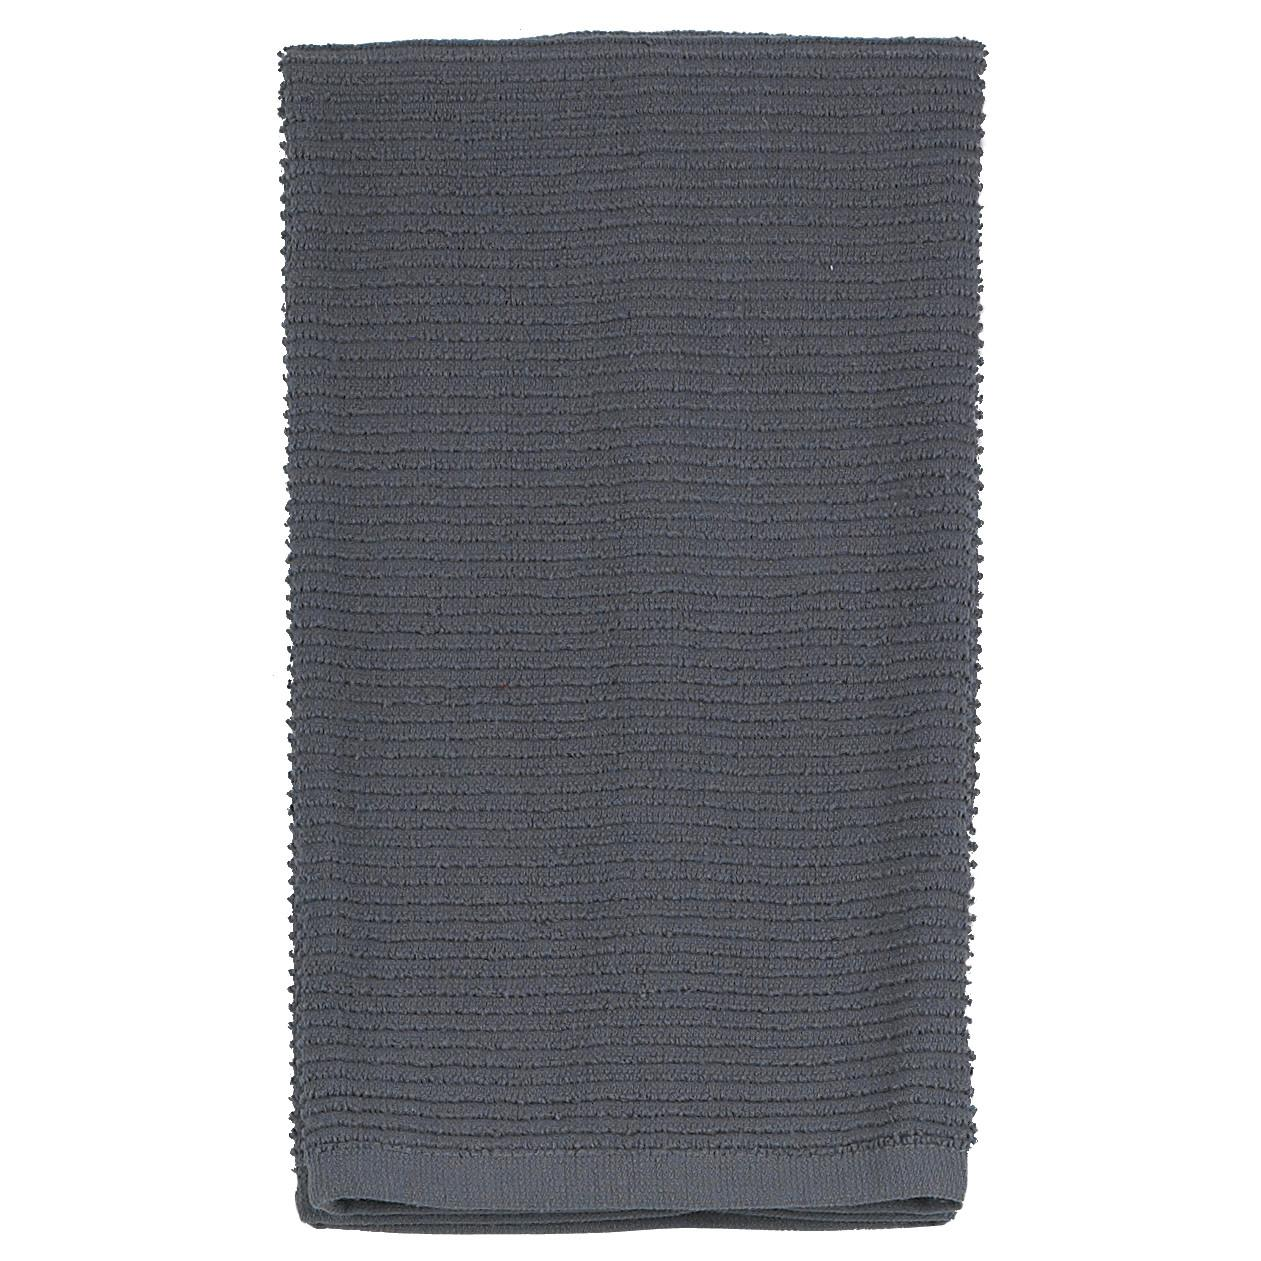 Dish Towel Ribbed Gray-charcoal